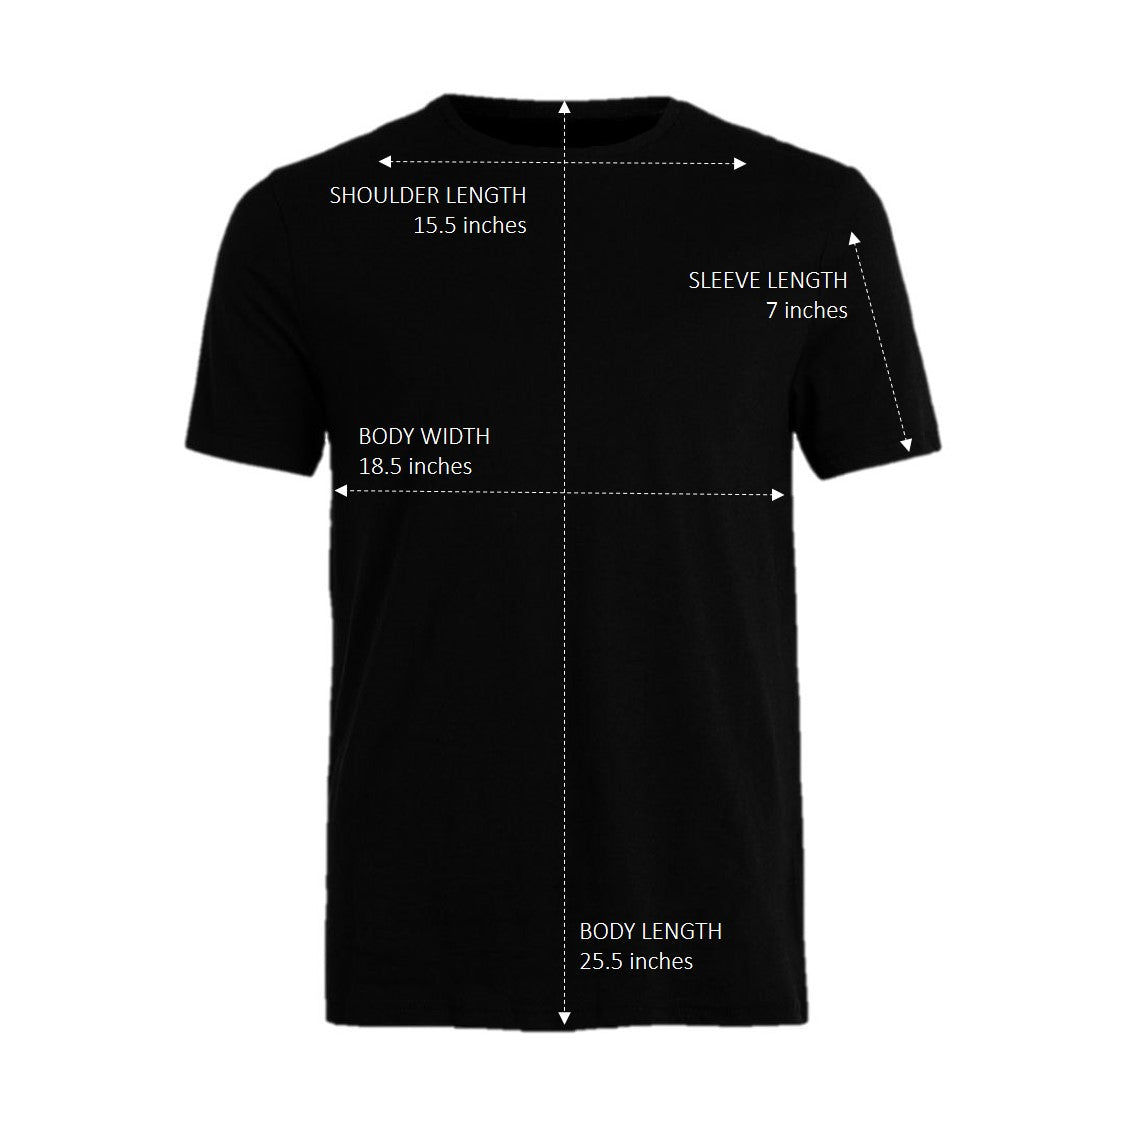 3-PACK Dearion Slim Fit T-Shirts Black (2+1 Promo)